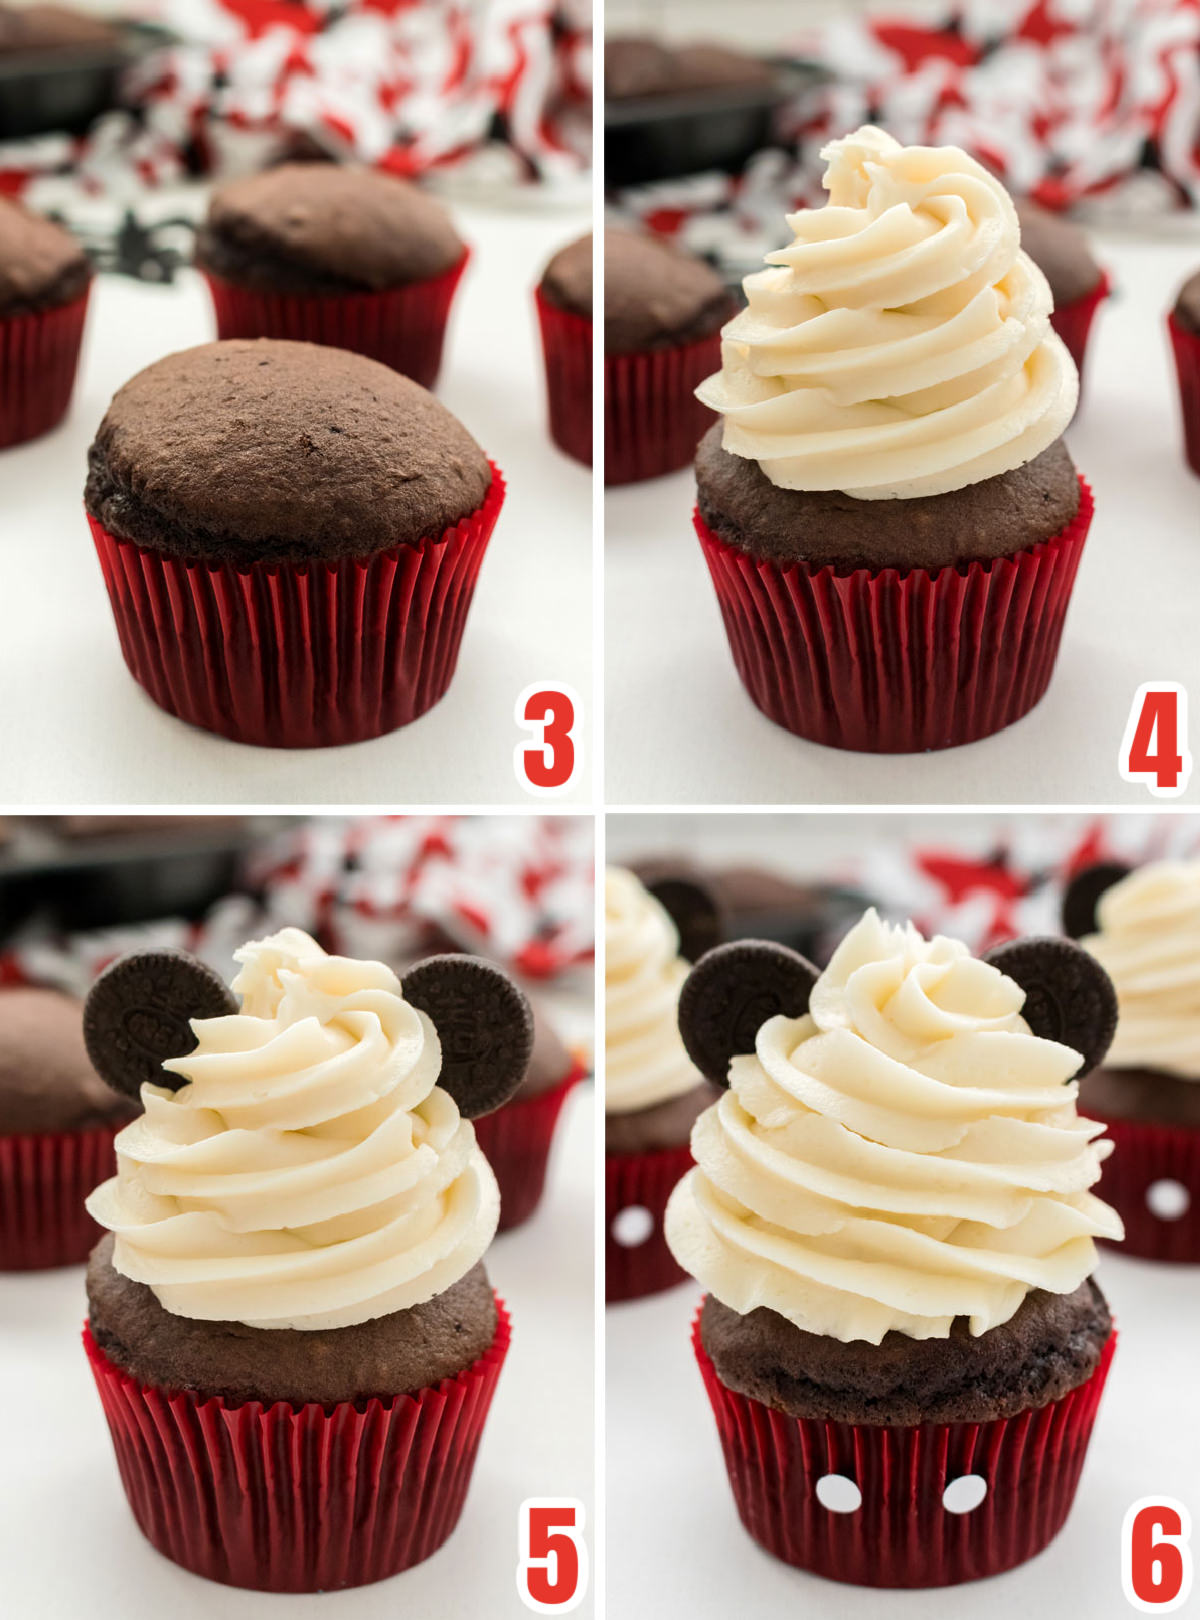 Collage image showing the steps for decorating the Mickey Mouse Cupcakes.